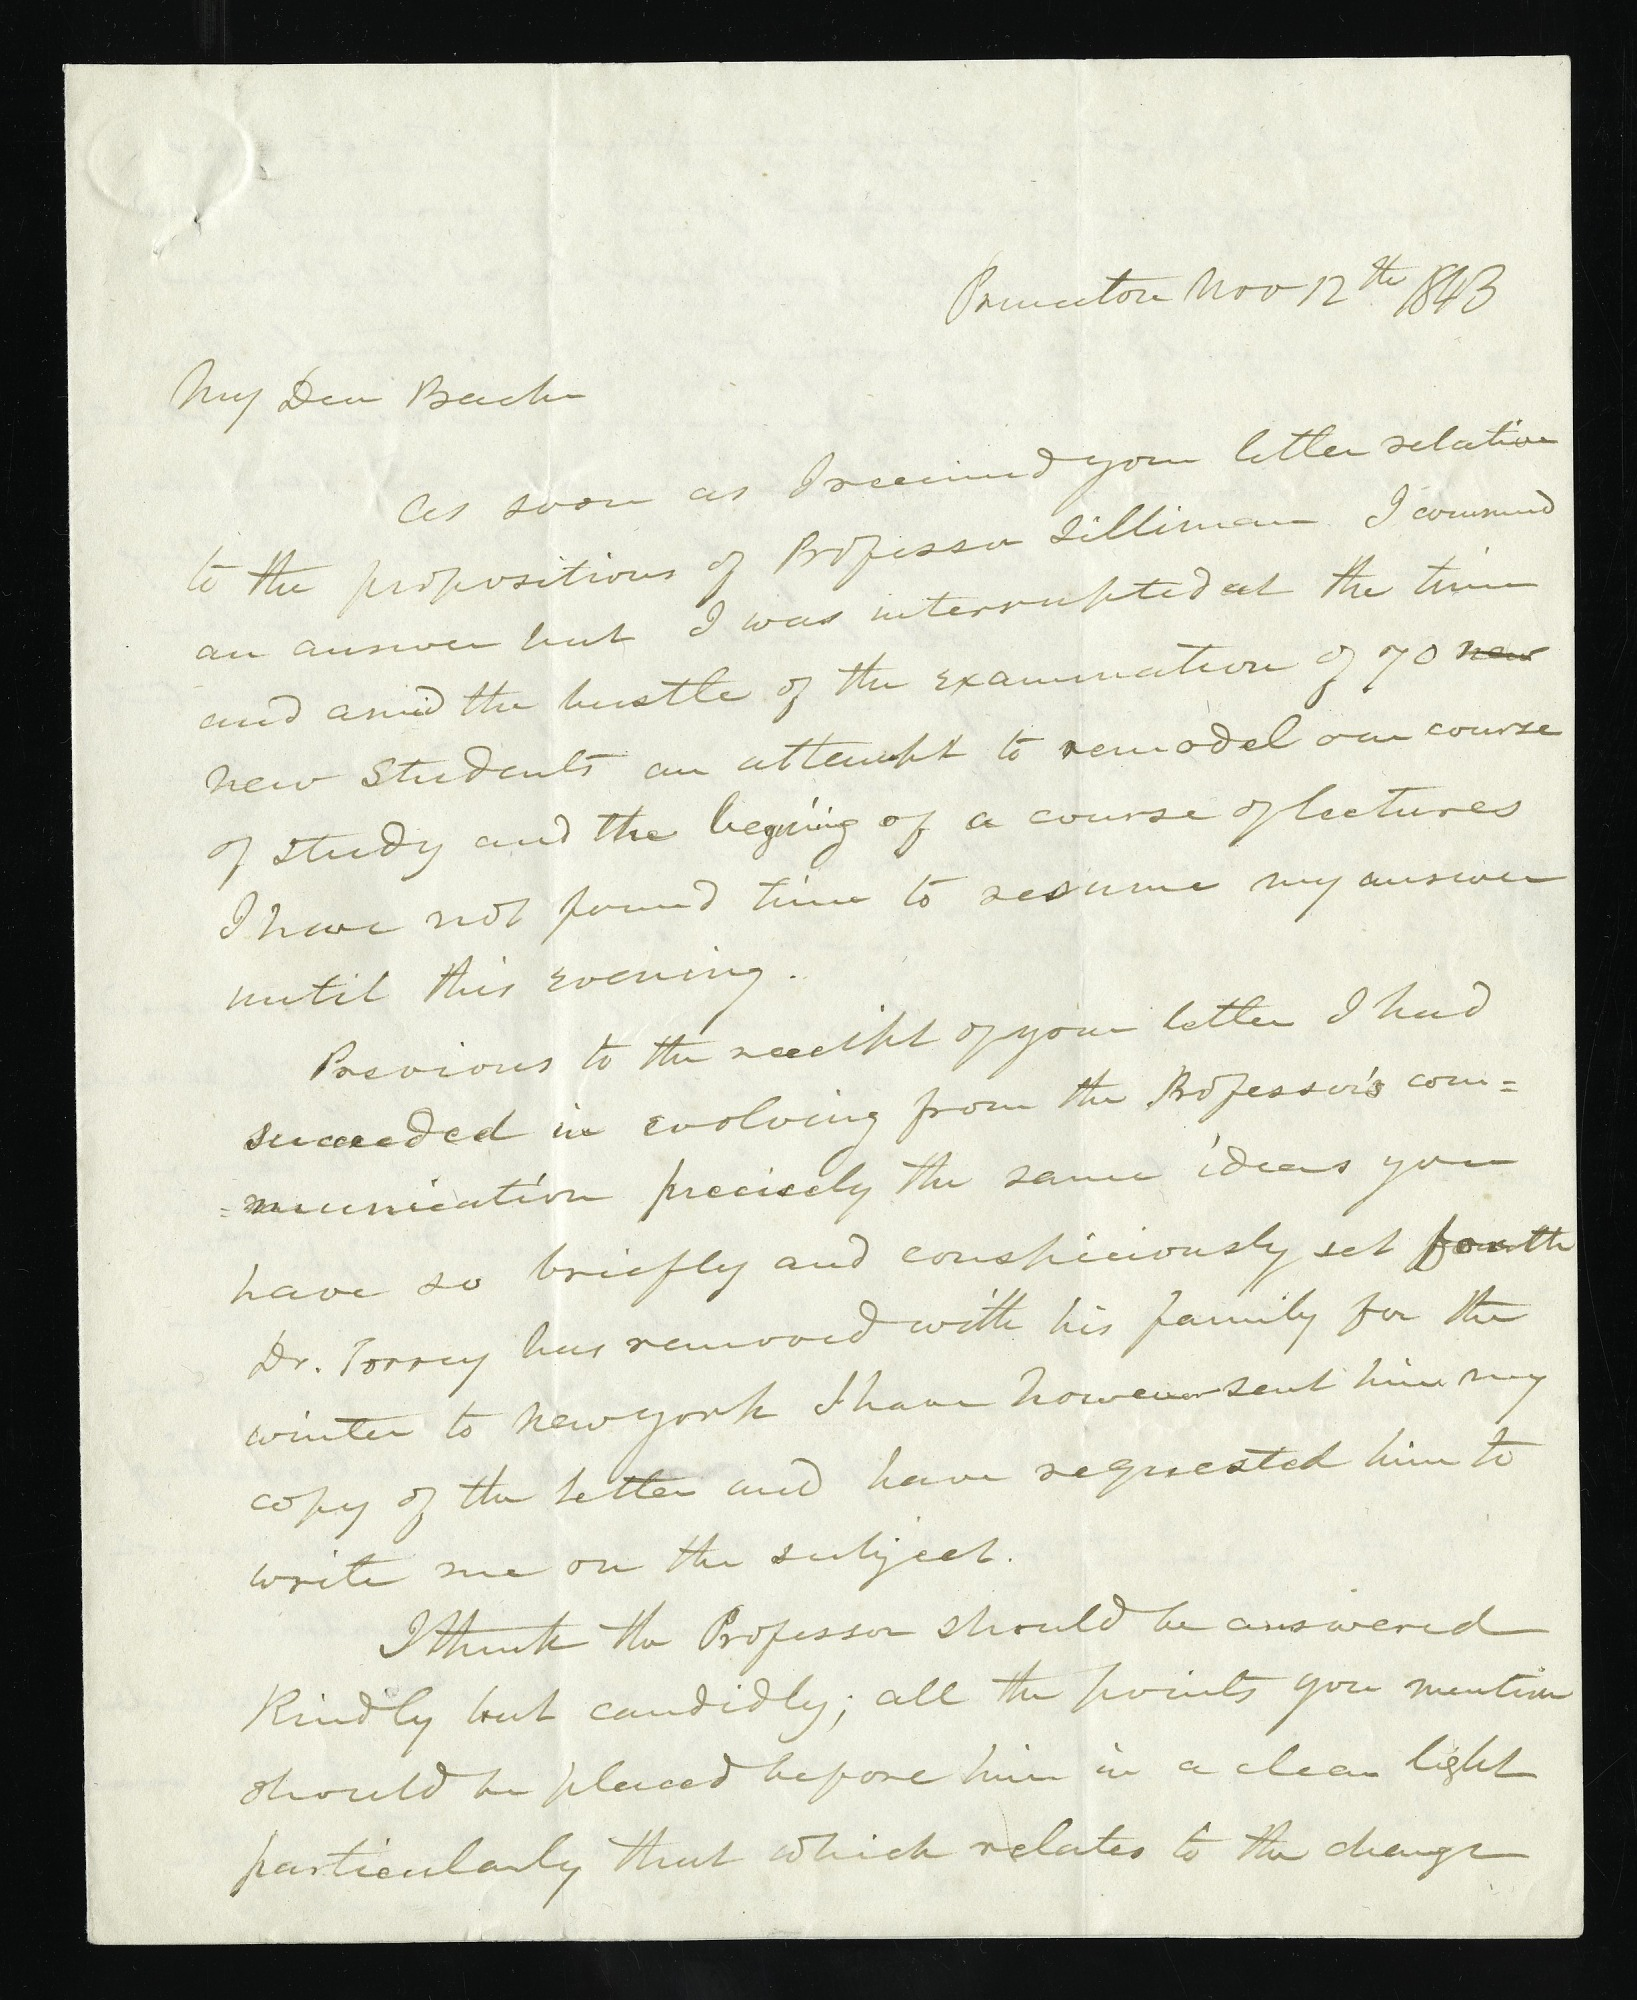 Joseph Henry's Letter to Alexander Dallas Bache (November 12, 1843)